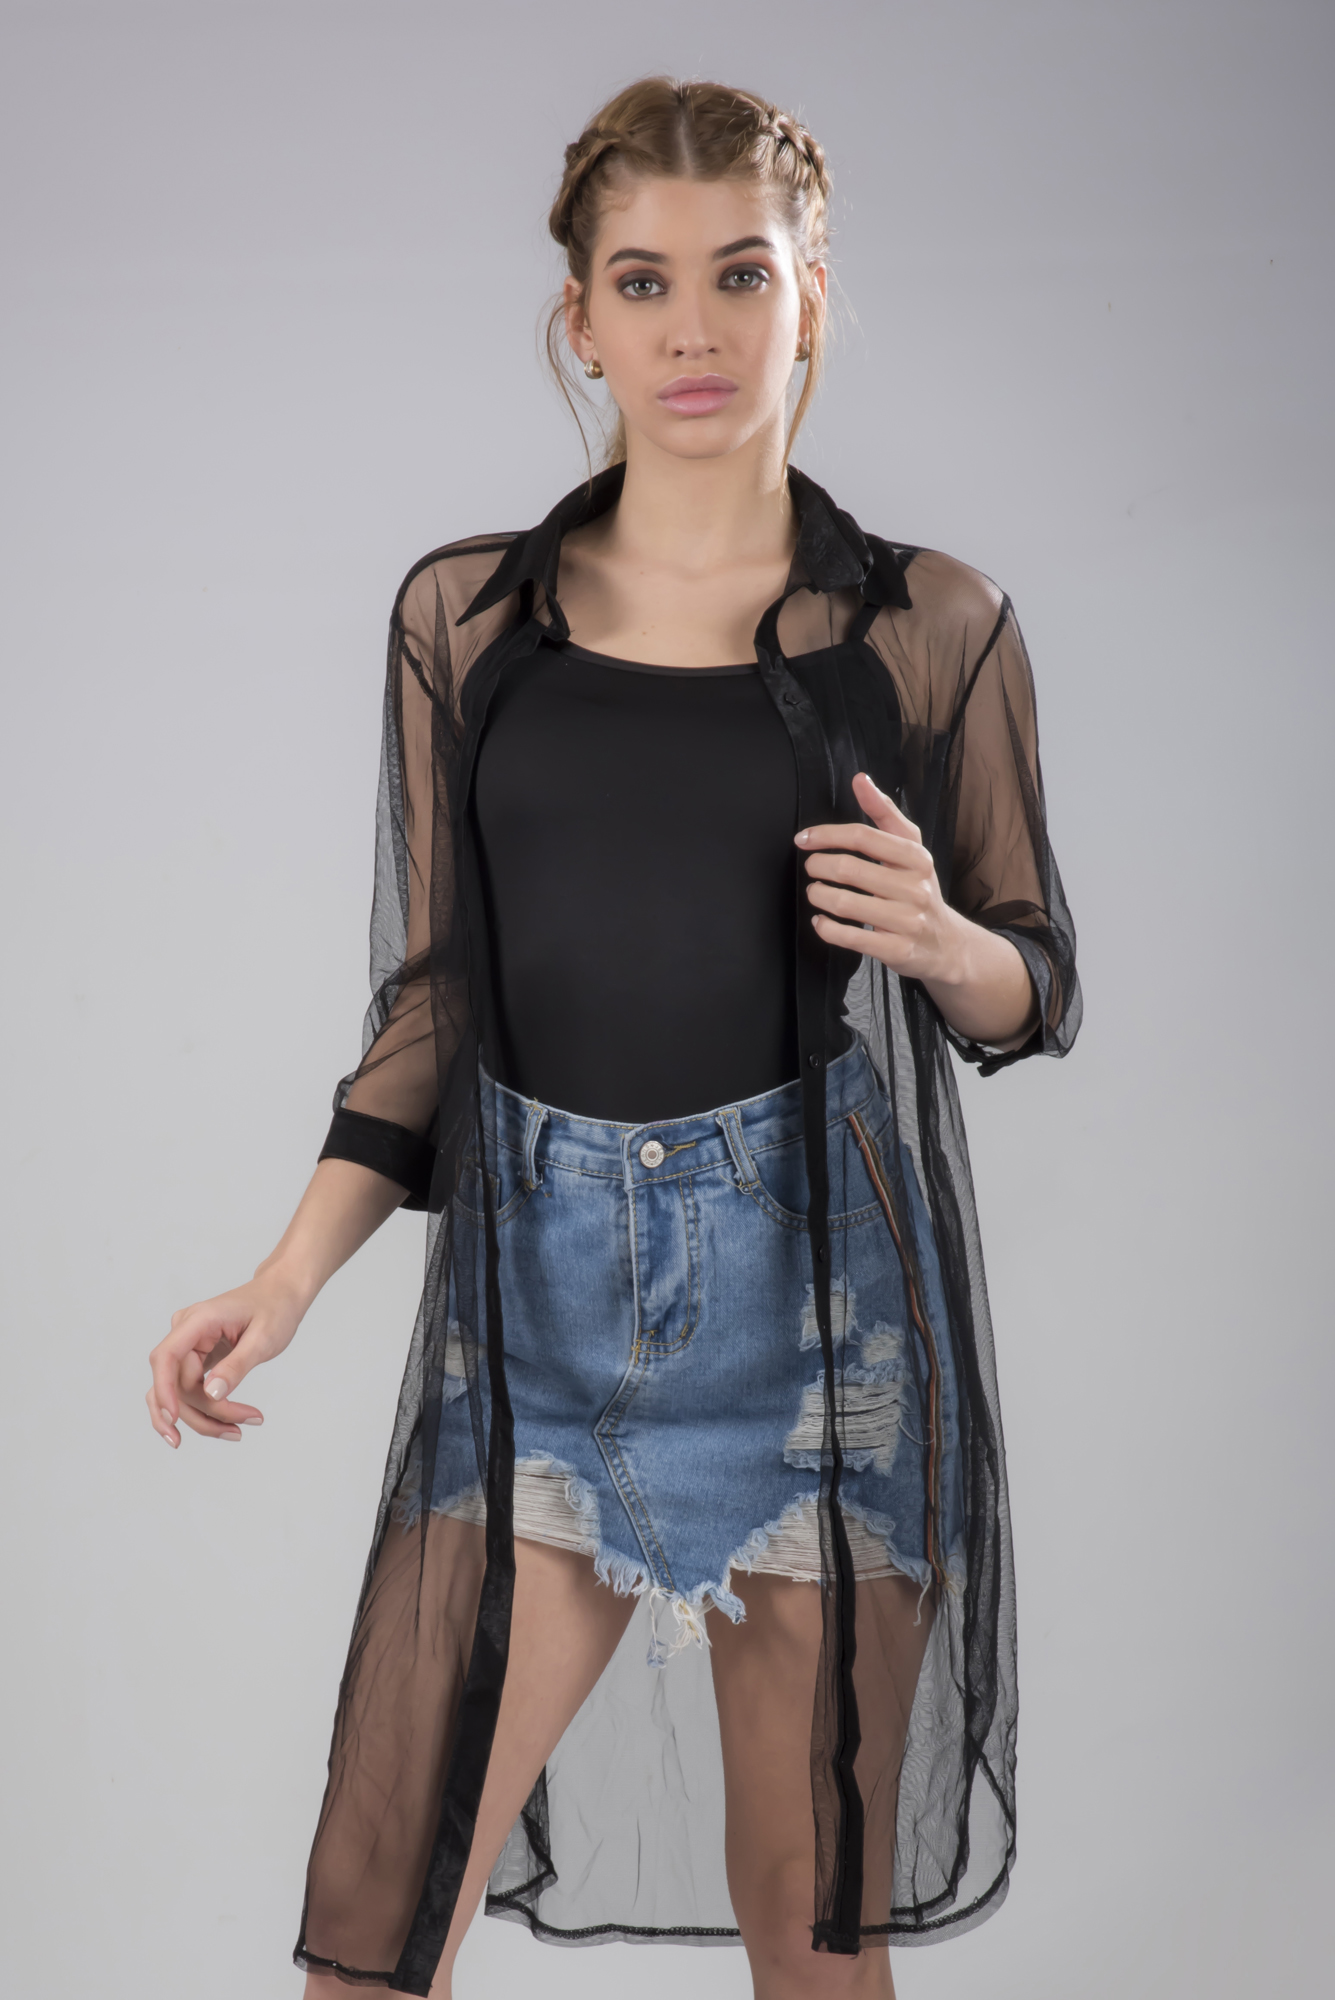 Buy How to sheer wear button ups pictures trends